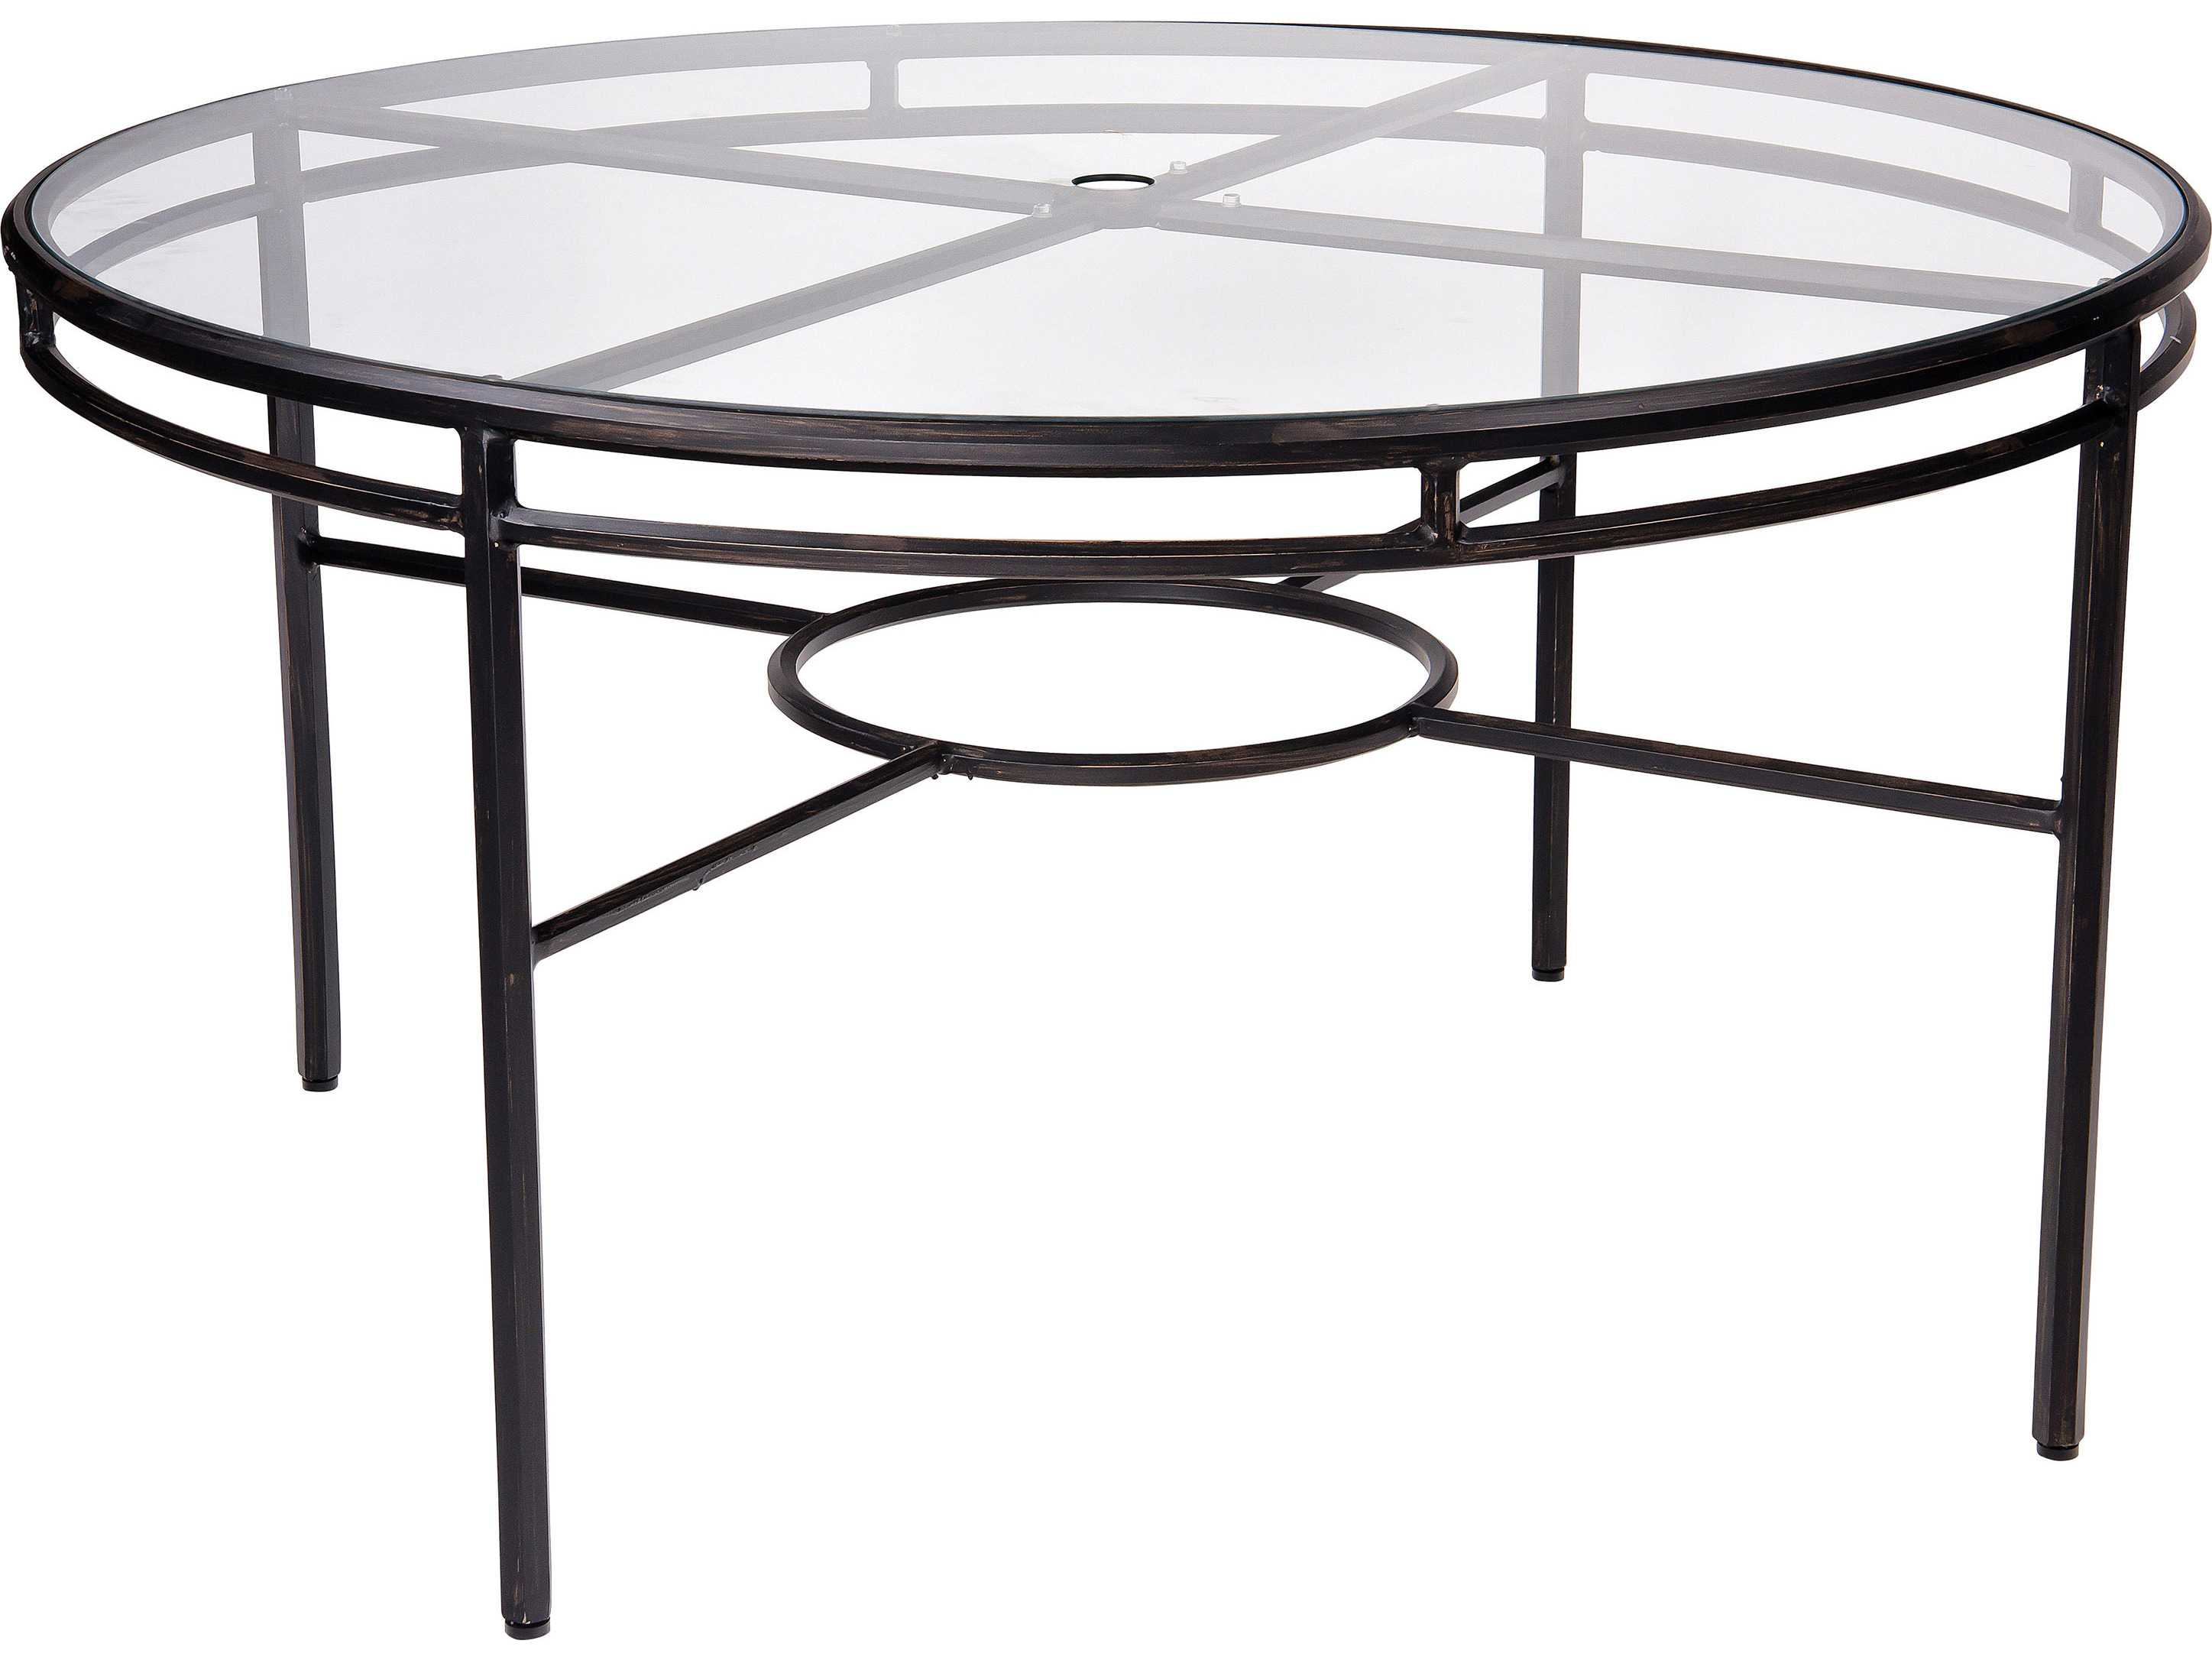 54 54 Glass Table Top: Woodard Nob Hill Aluminum 54 Round Glass Top Table With